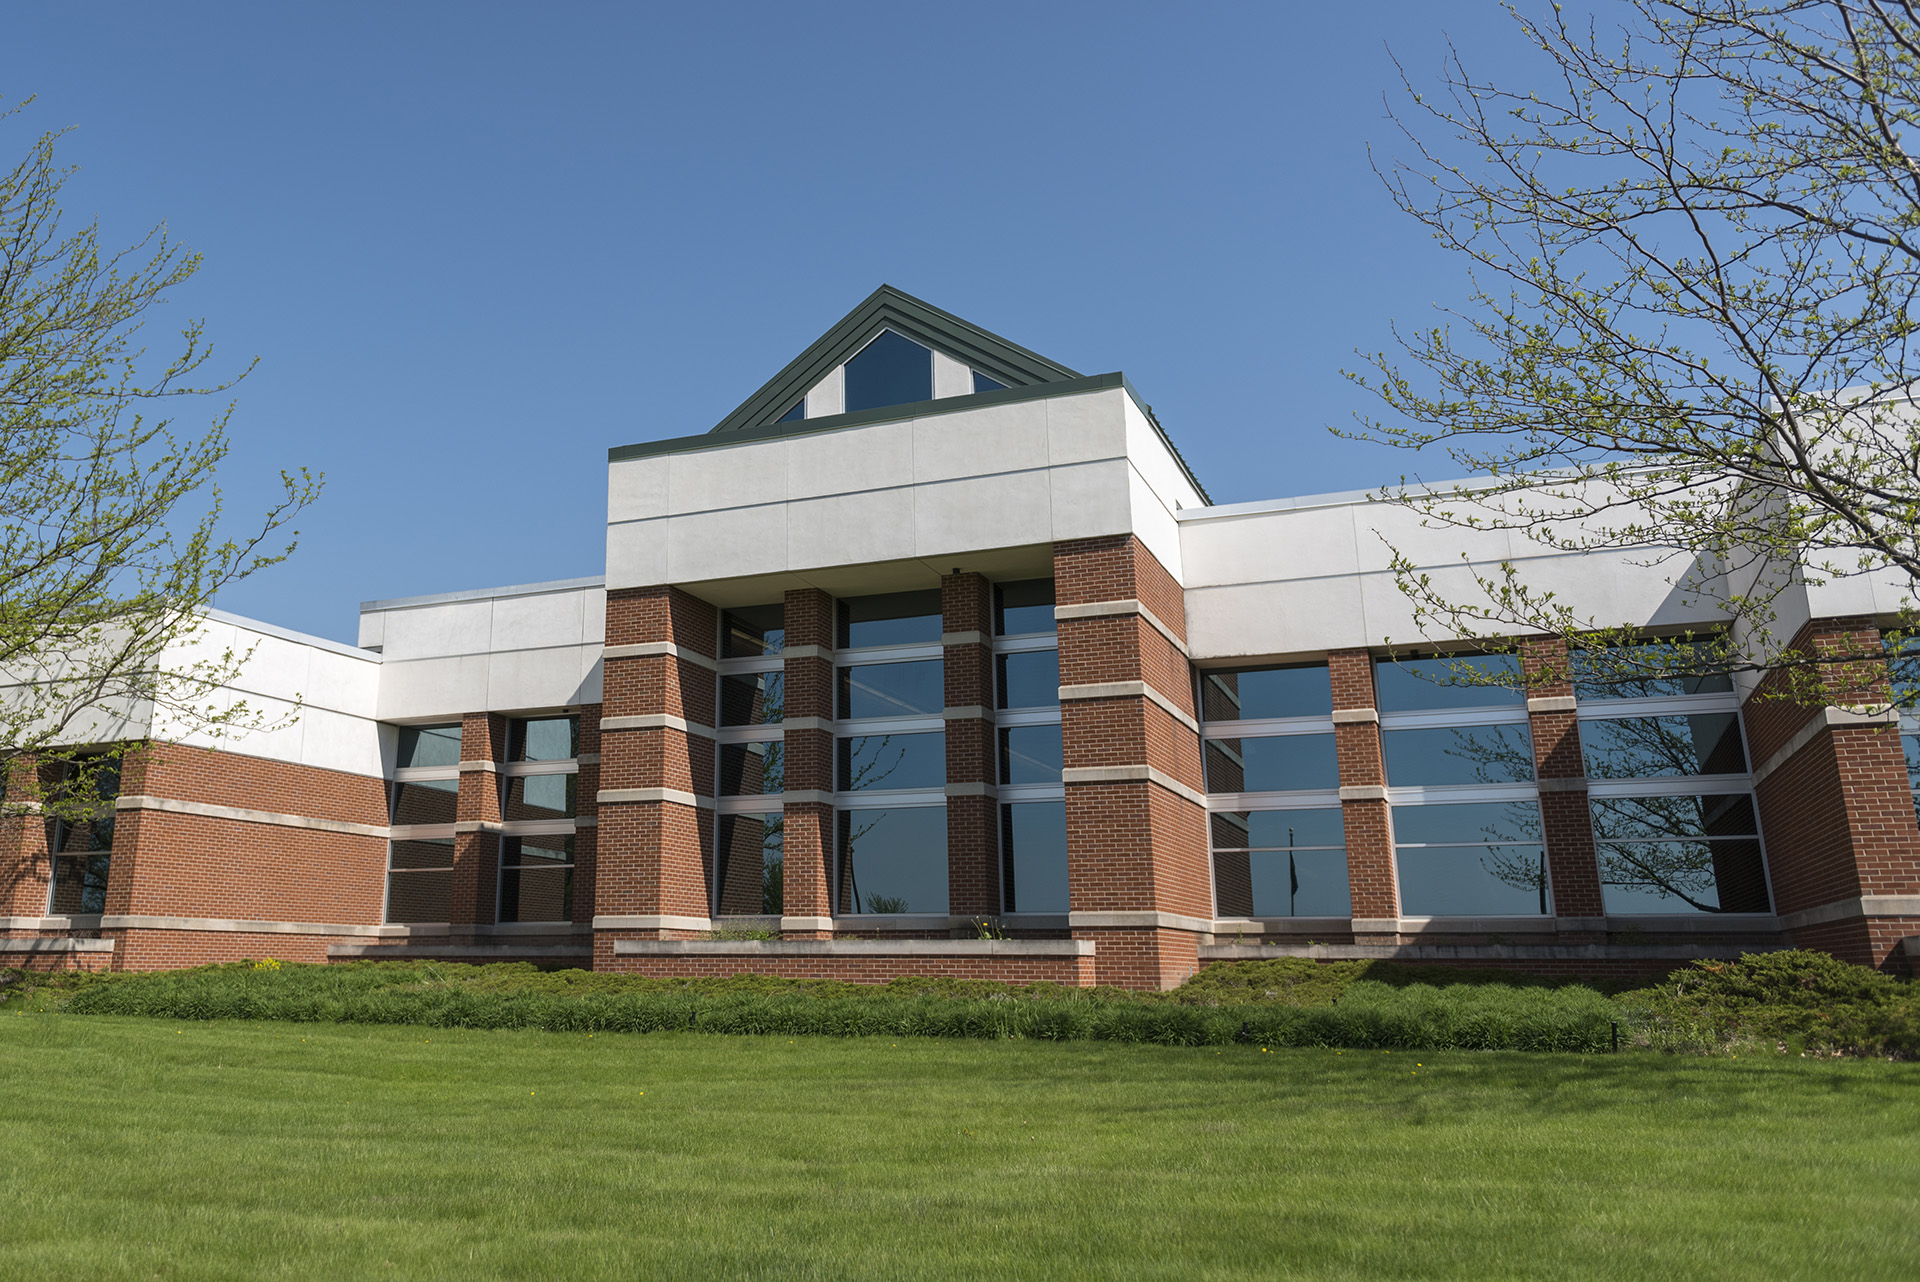 The Library Learning Information Center is a public library that houses thousands of books.